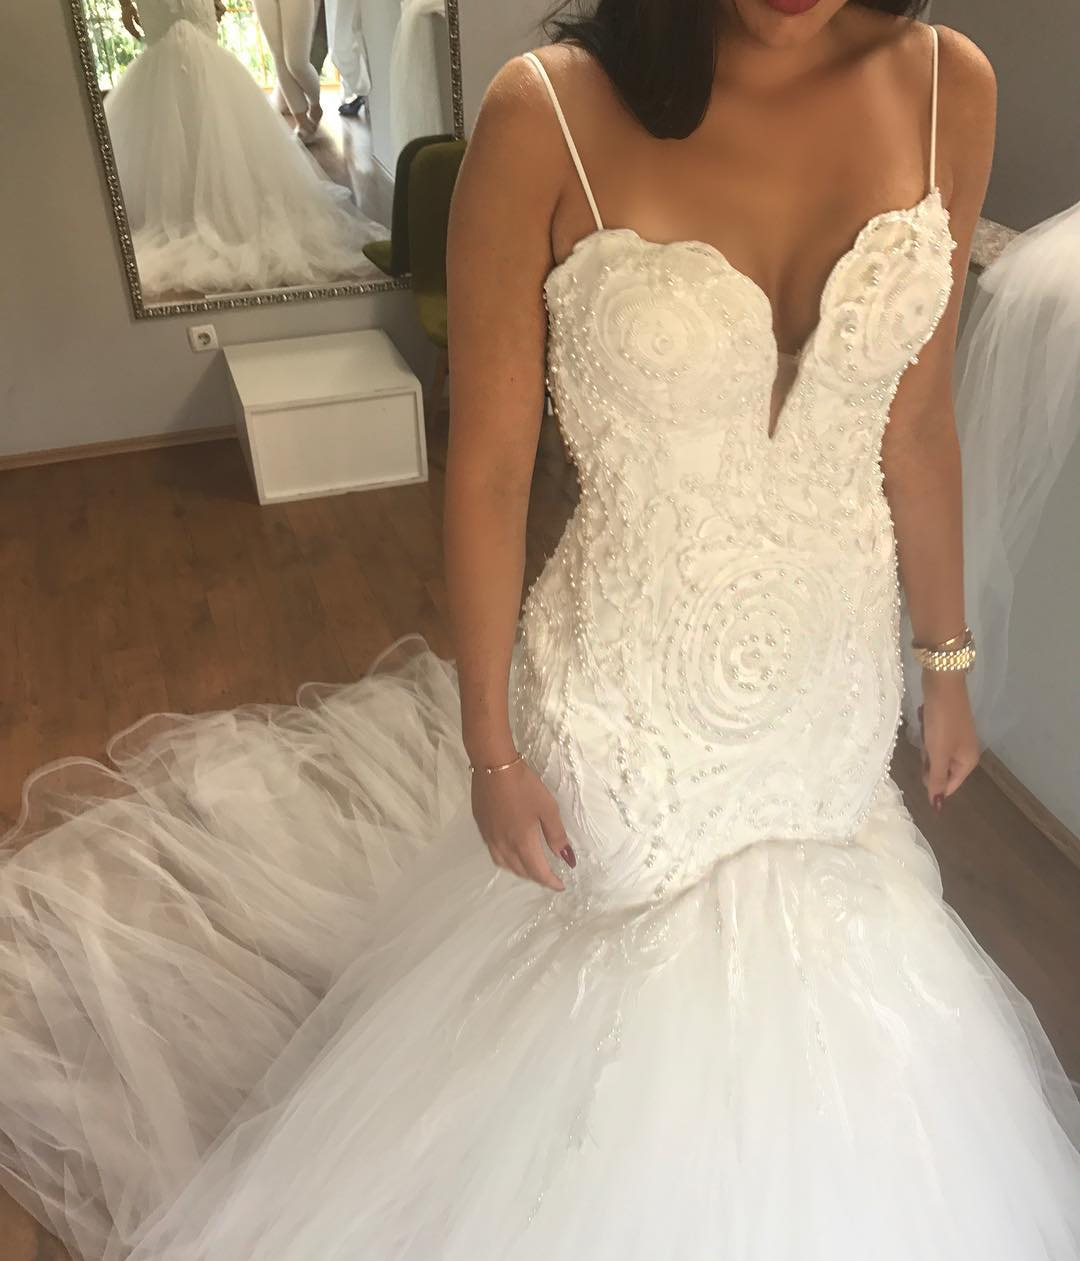 4c667343db7 Luxury White Mermaid Wedding Dresses Spaghetti Straps Robe De Mariage  Country Wedding Gowns Pearls Heavy 2018 BlingBling Sexy Sweep Train Bridal  Gowns Tulle ...